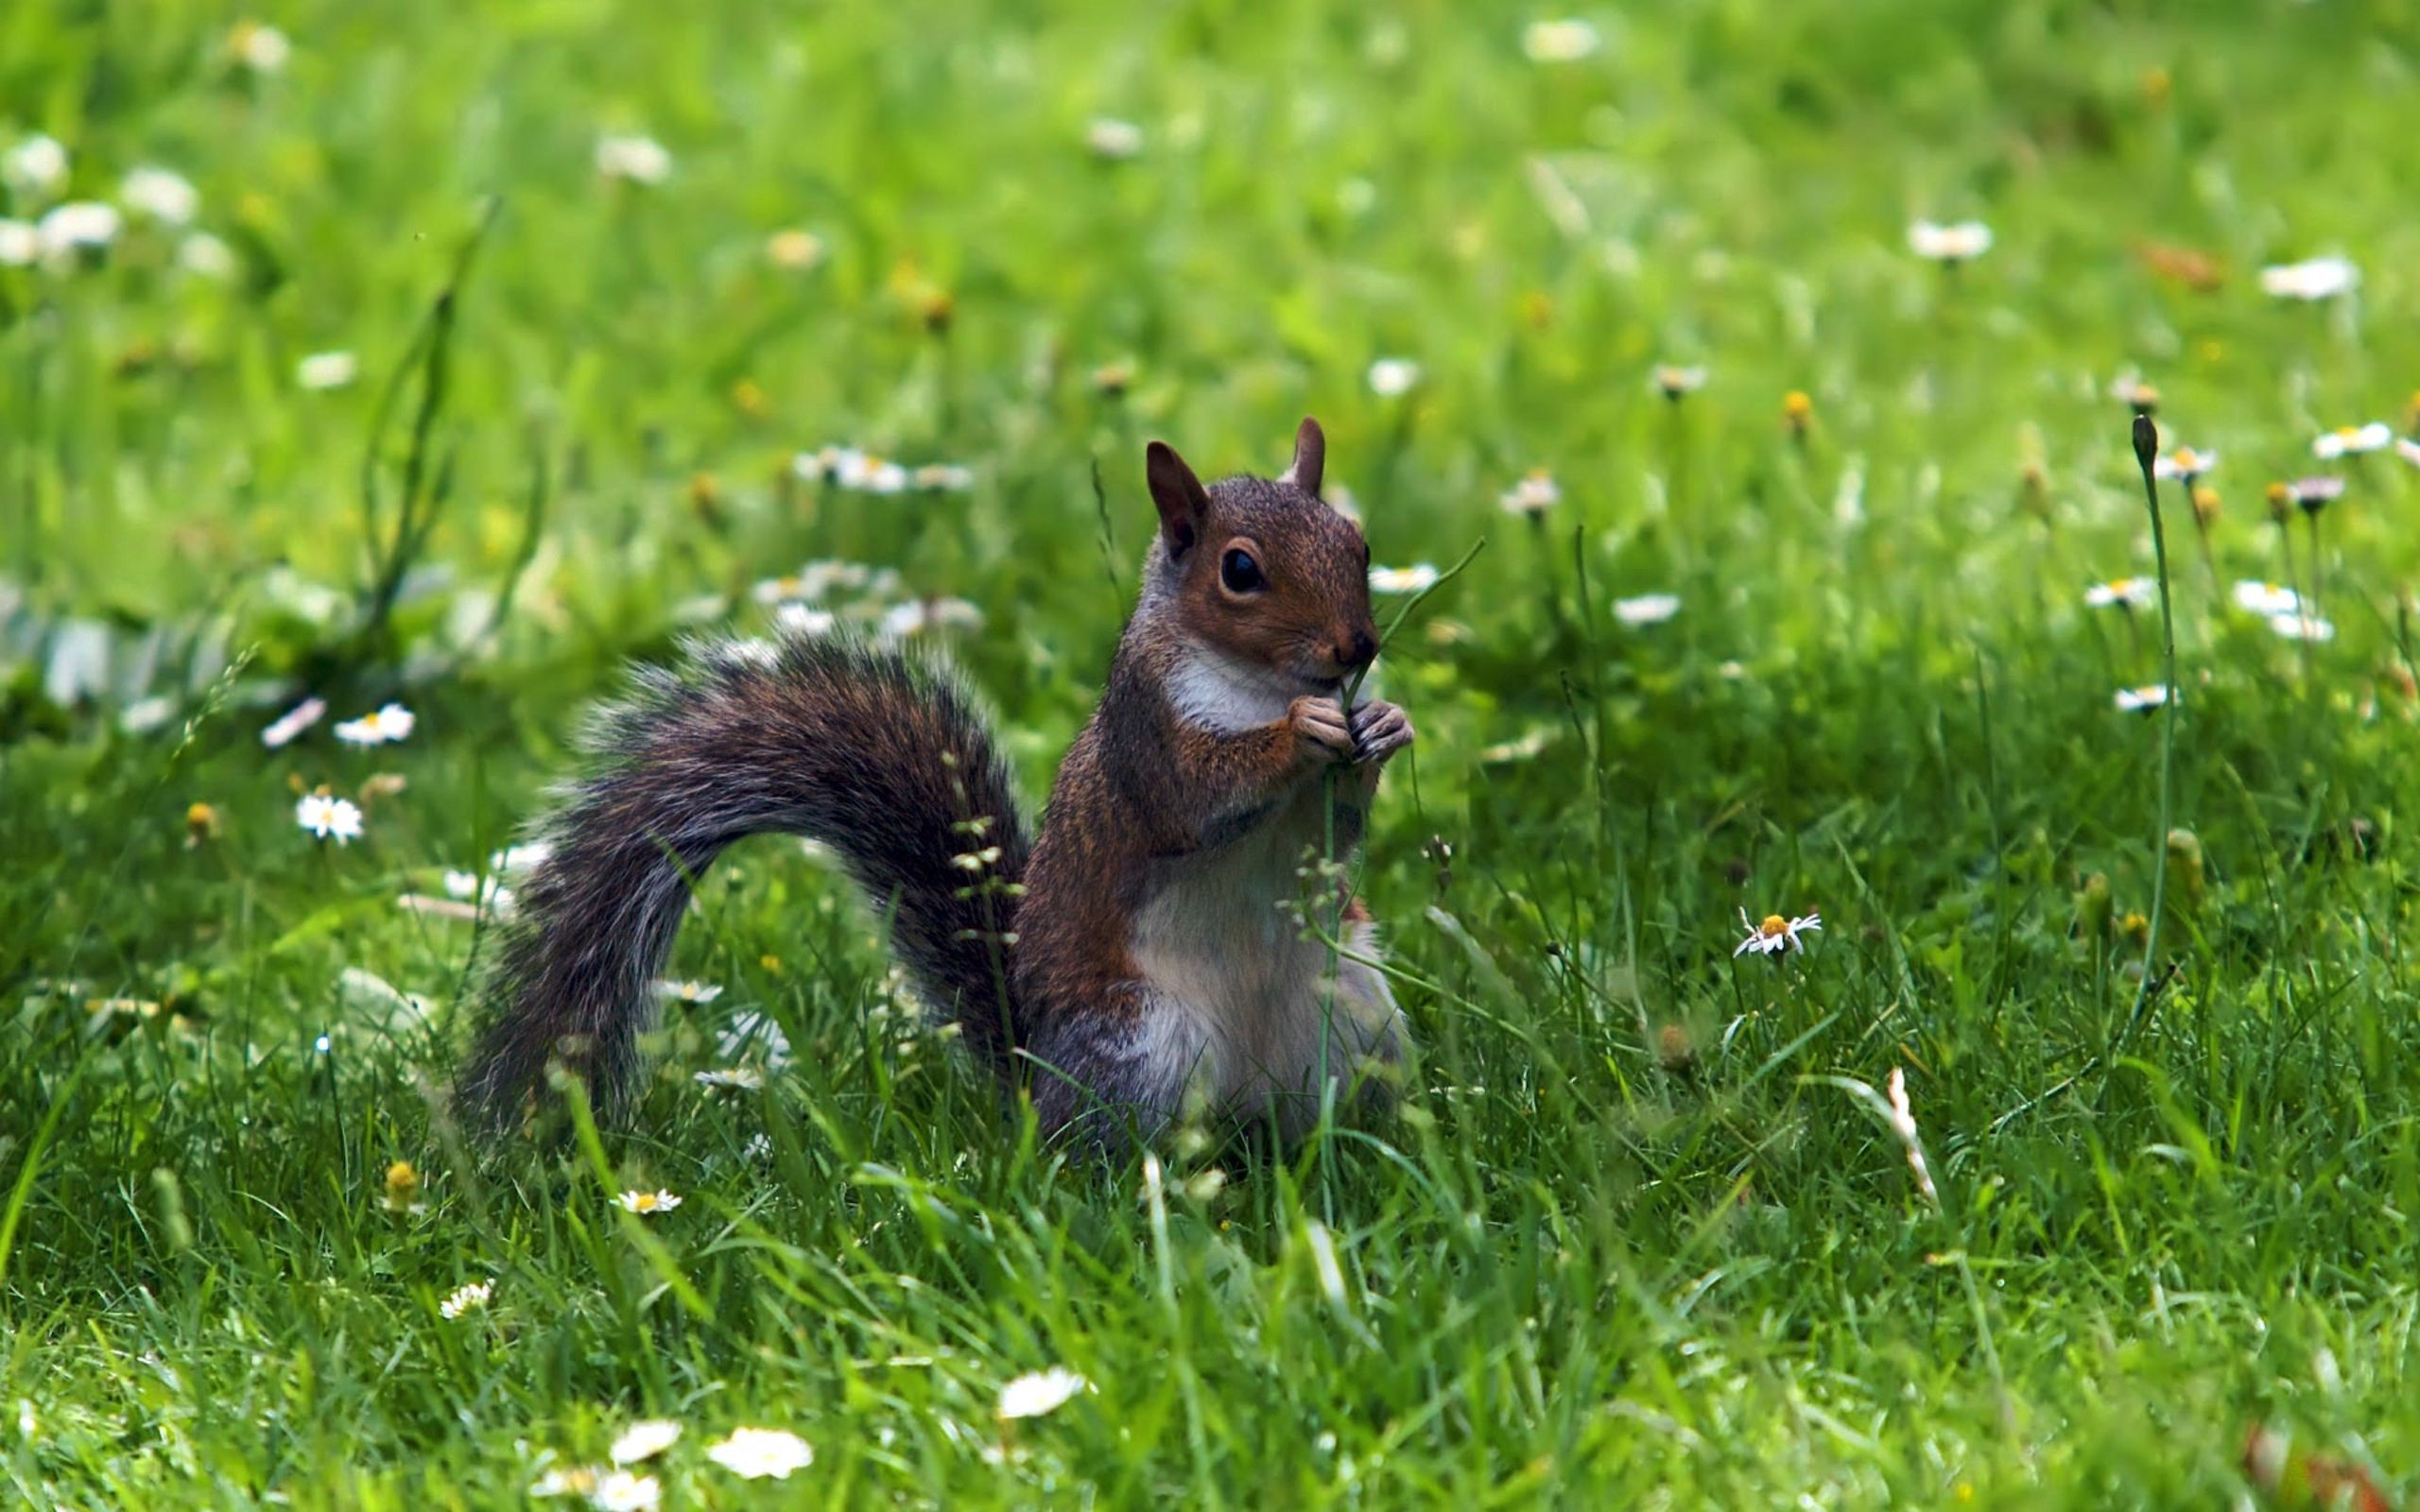 76974 download wallpaper Animals, Squirrel, Grass, Sit, Animal screensavers and pictures for free